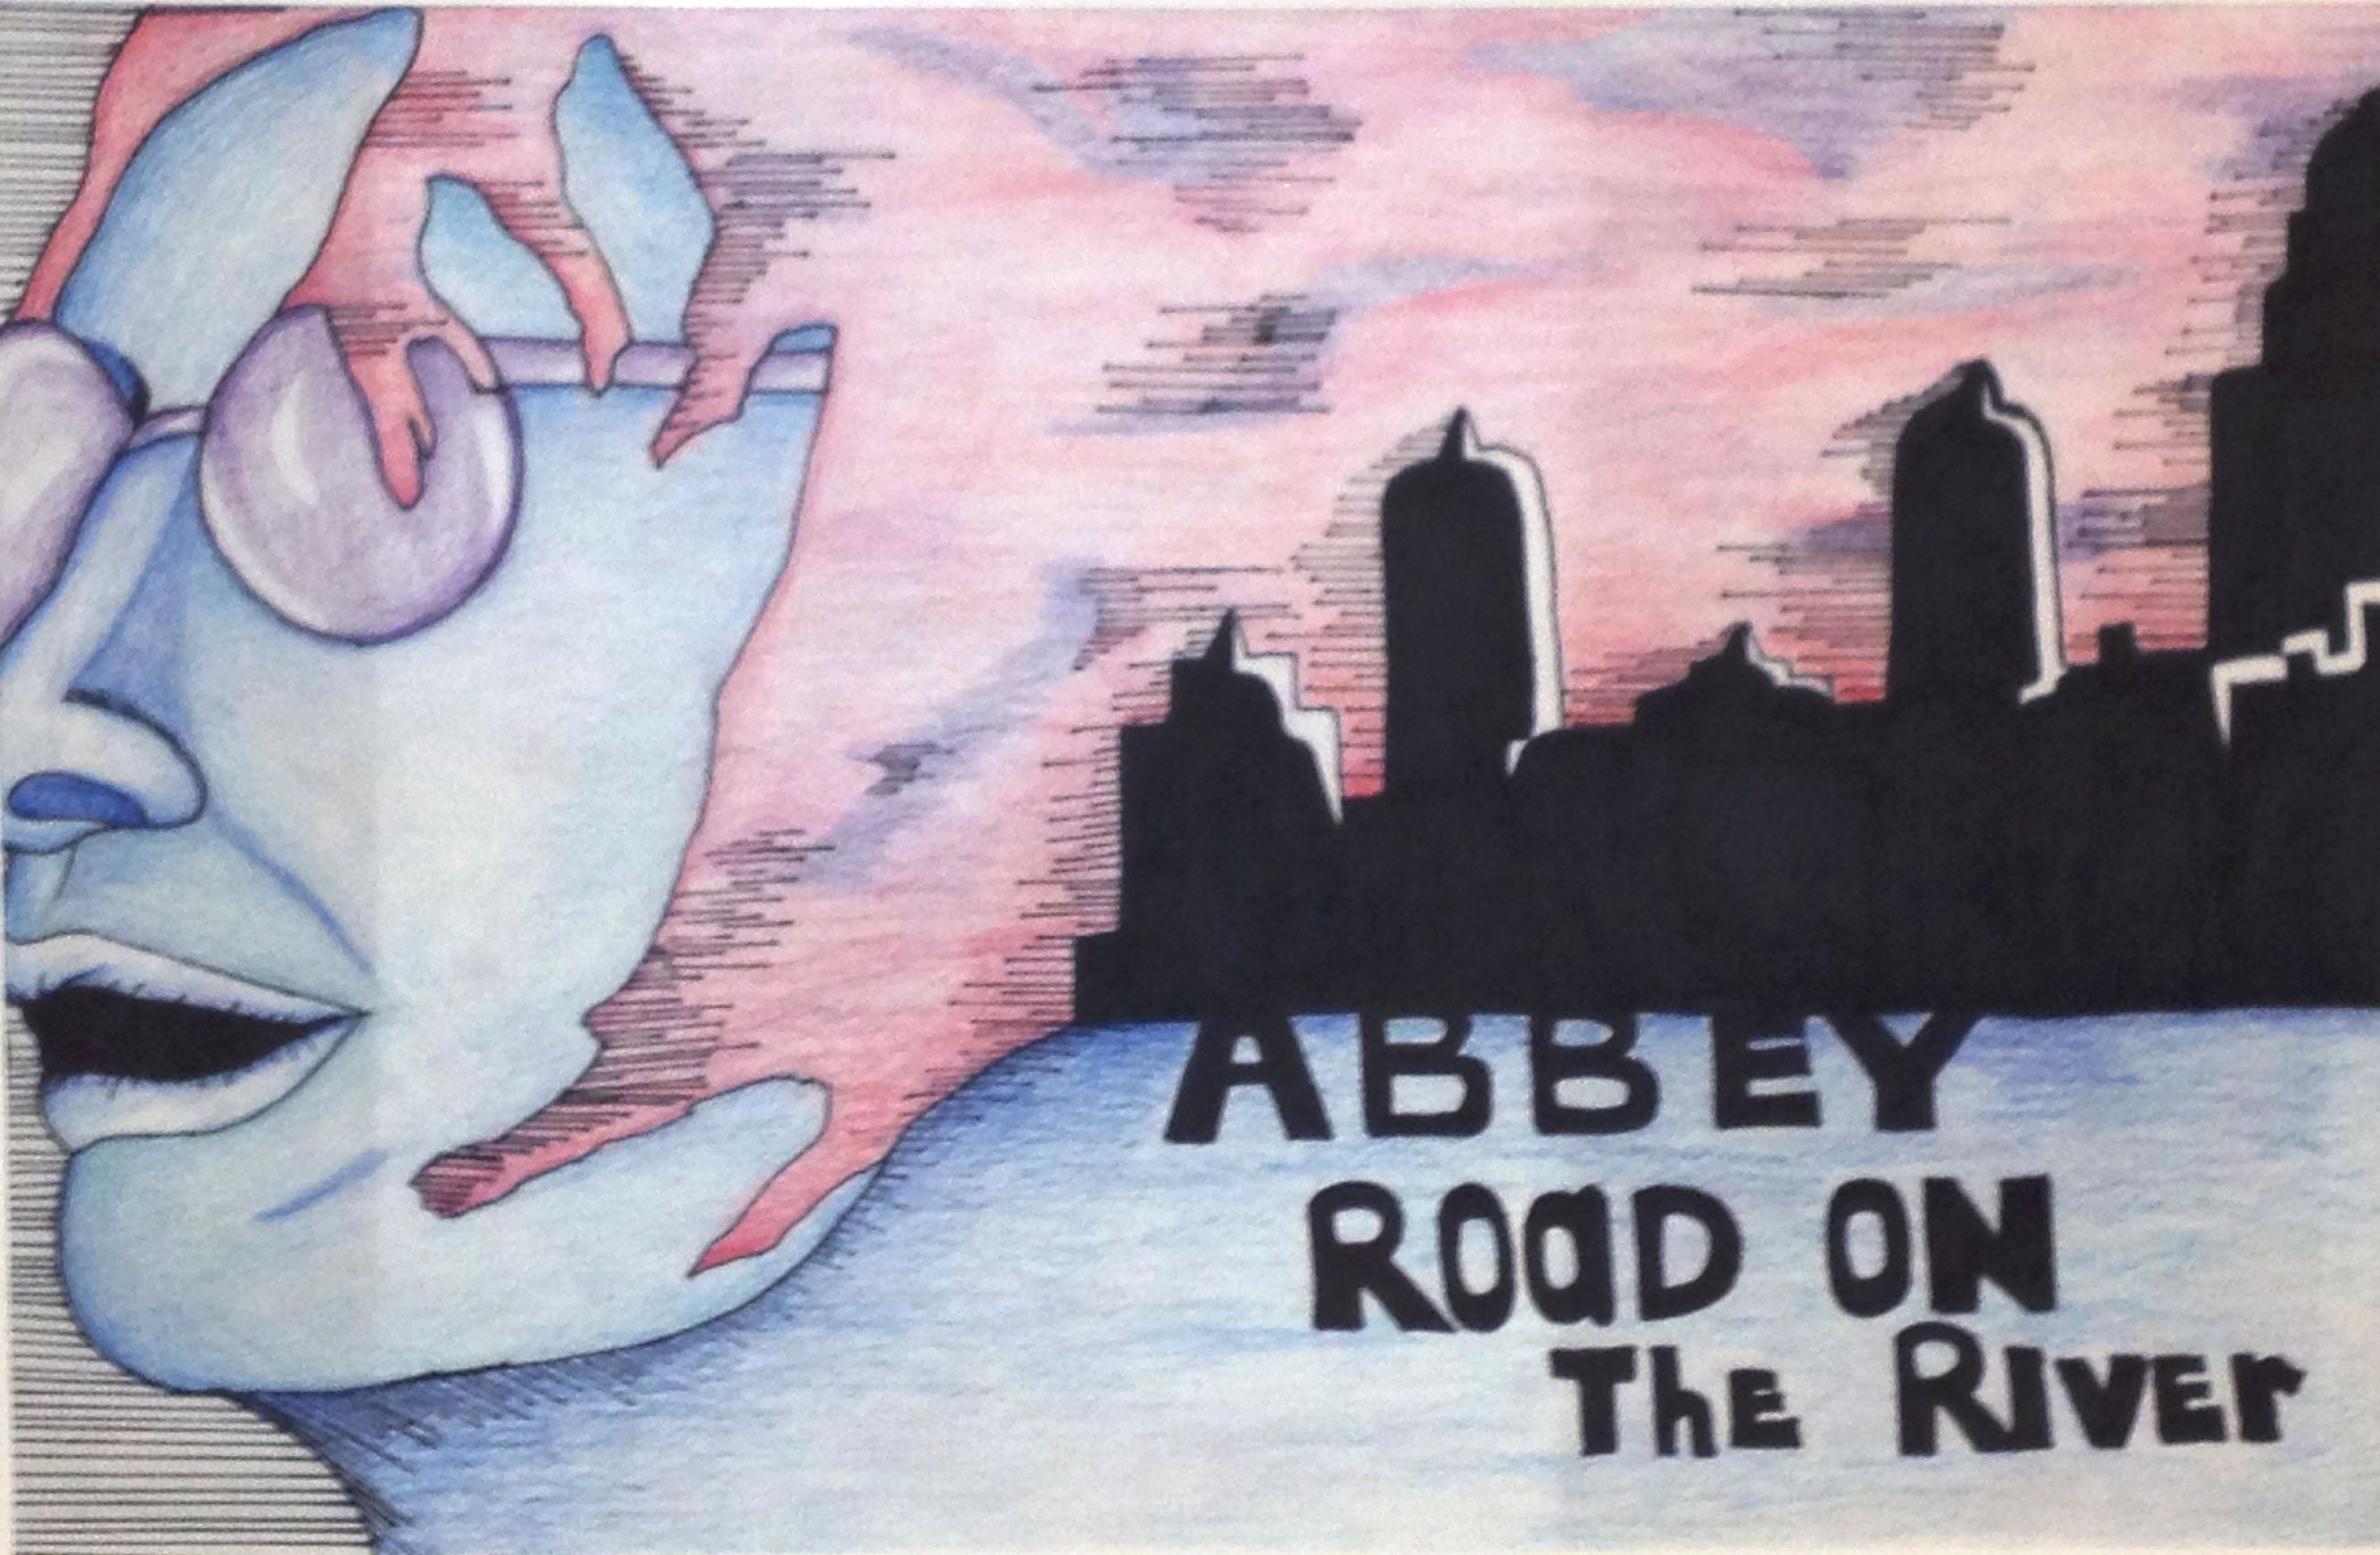 DuPont Manual poster contest - Abbey Road on the River